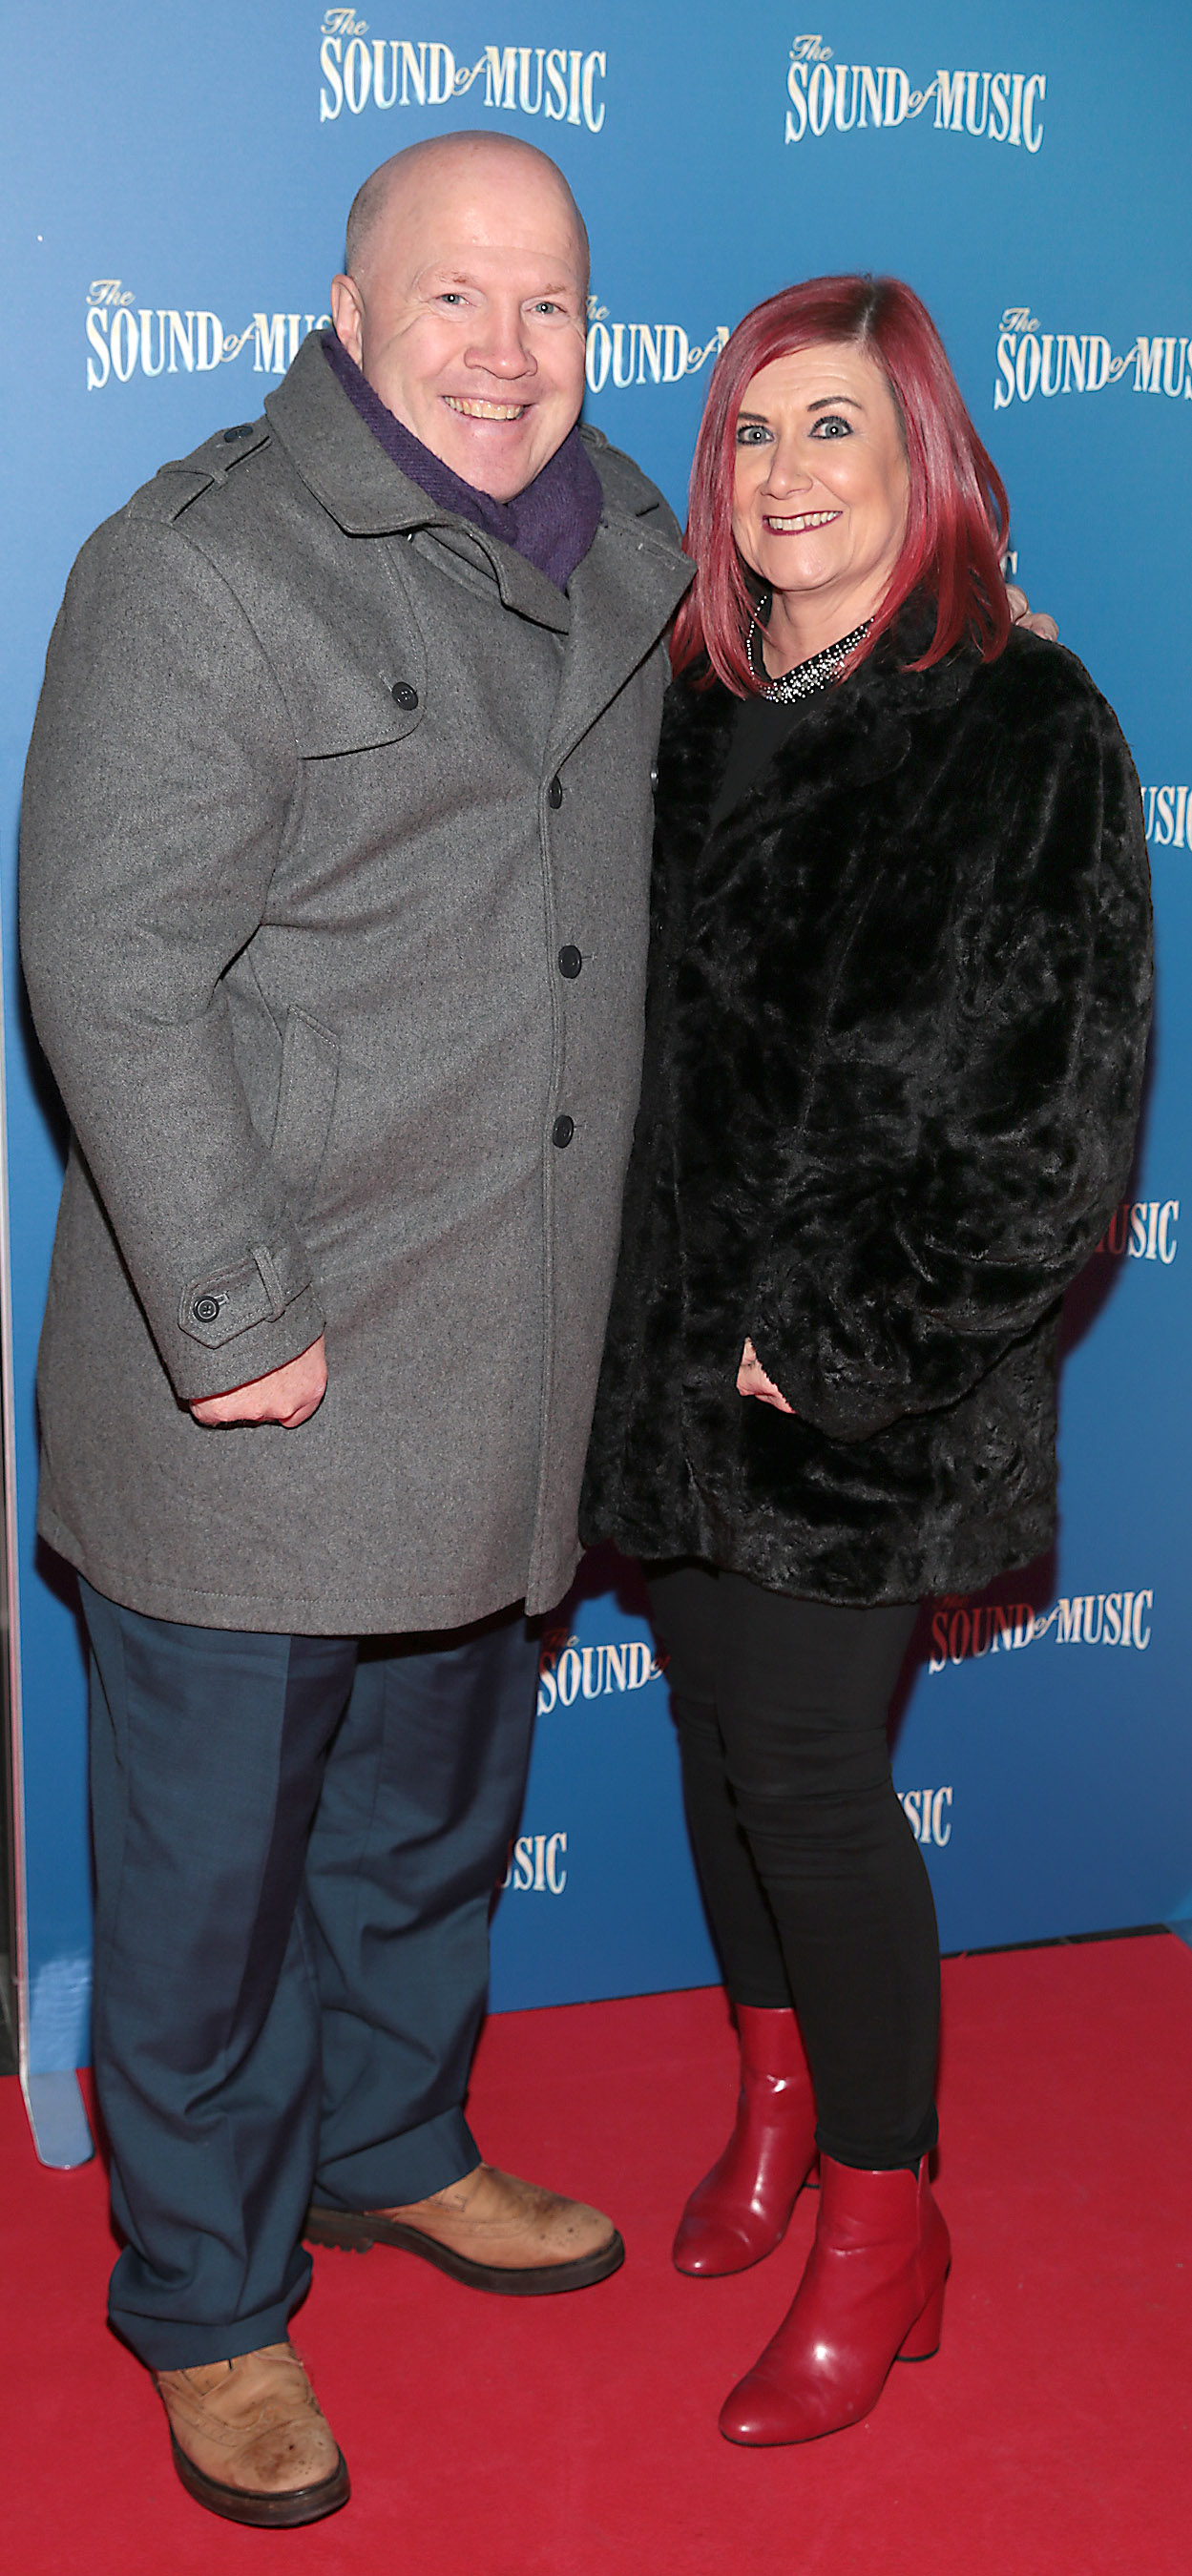 Michael Carruth and Paula Carruth  pictured at the opening night of The Sound of Music at the Bord Gais Energy Theatre, Dublin. Pic Brian McEvoy